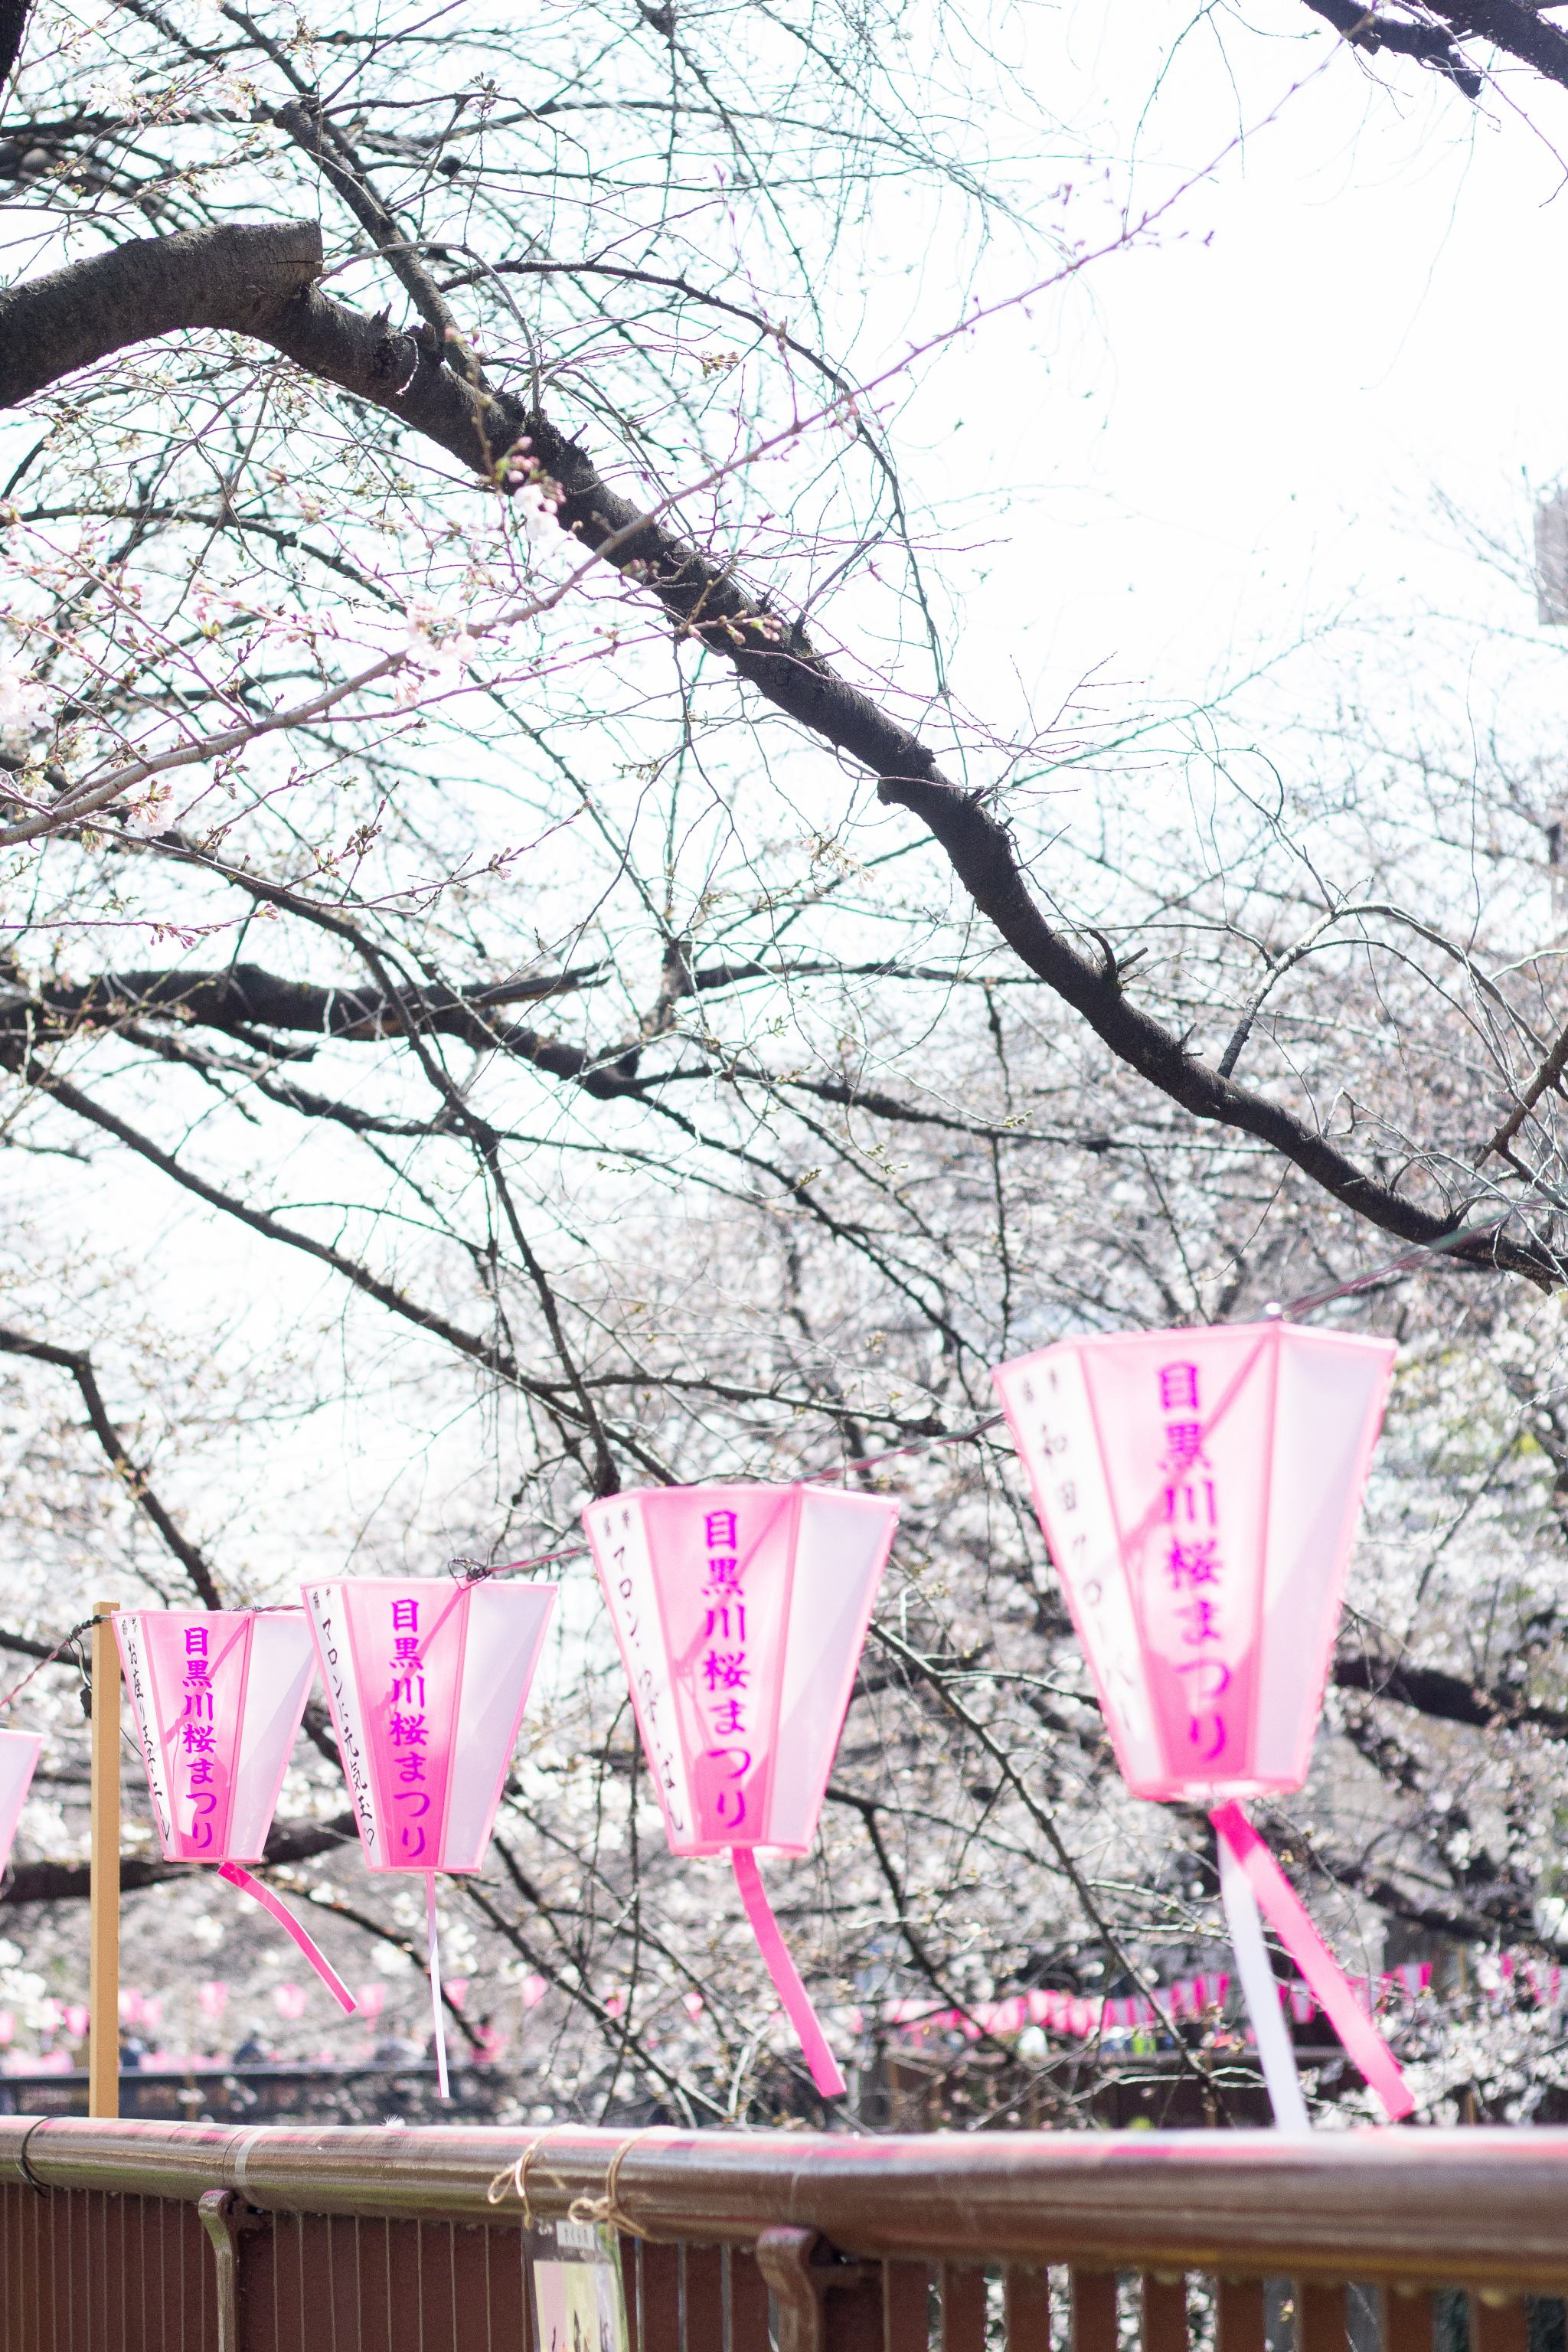 Tokyo - traveling in Tokyo - what to see in Japan - Meguro River Cherry Blossoms